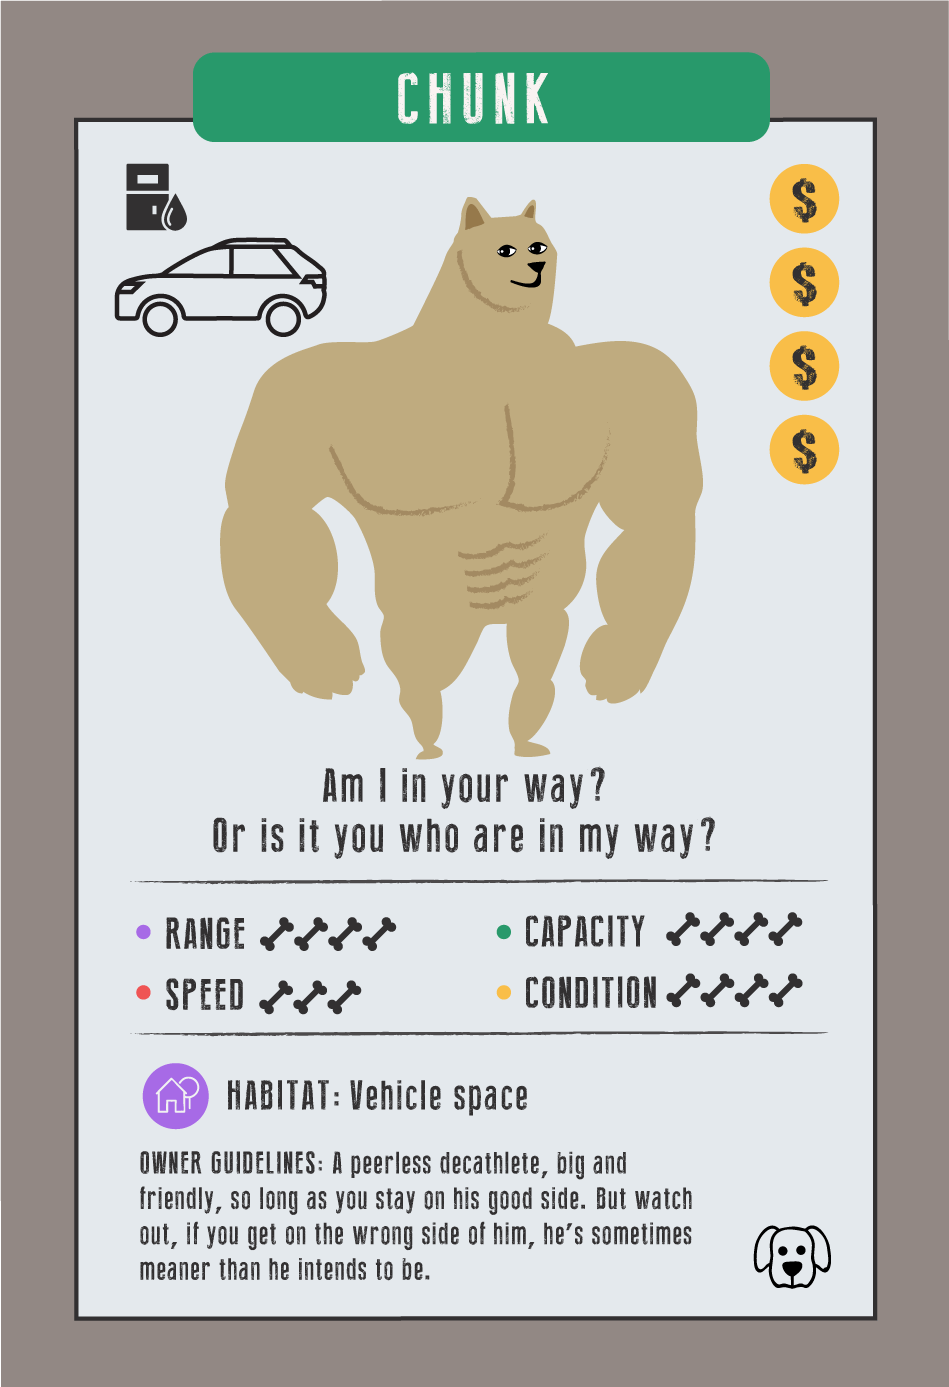 """Chunk DOG card, """"Am I in your way? Or is it you who are in my way?""""; he represents an SUV; """"Owner guidelines: A peerless decathlete, big and friendly, so long as you stay on his good side. But watch out, if you get on the wrong side of him, he's sometimes meaner than he intends to be."""""""